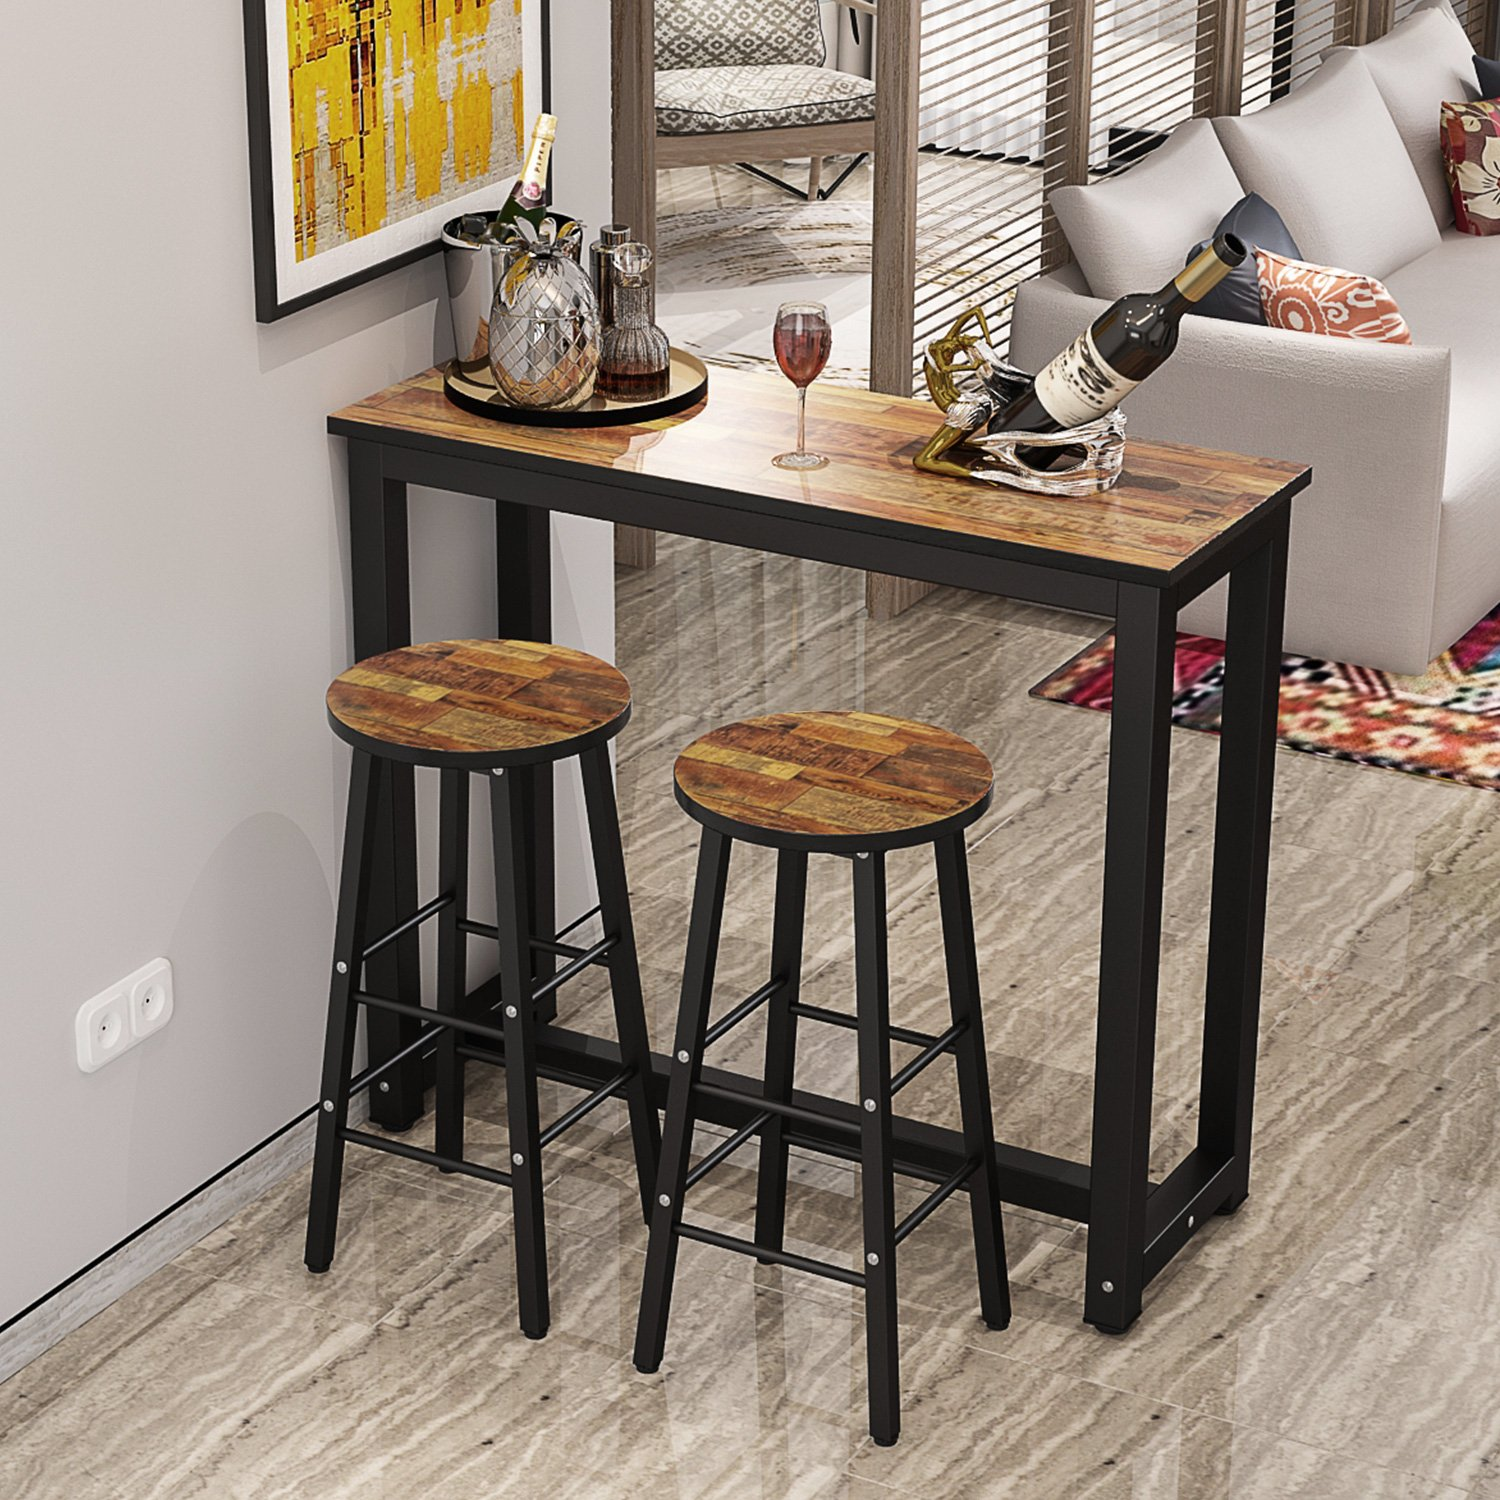 Tribesigns 9 Piece Pub Table Set, Counter Height Breakfast Bar ...